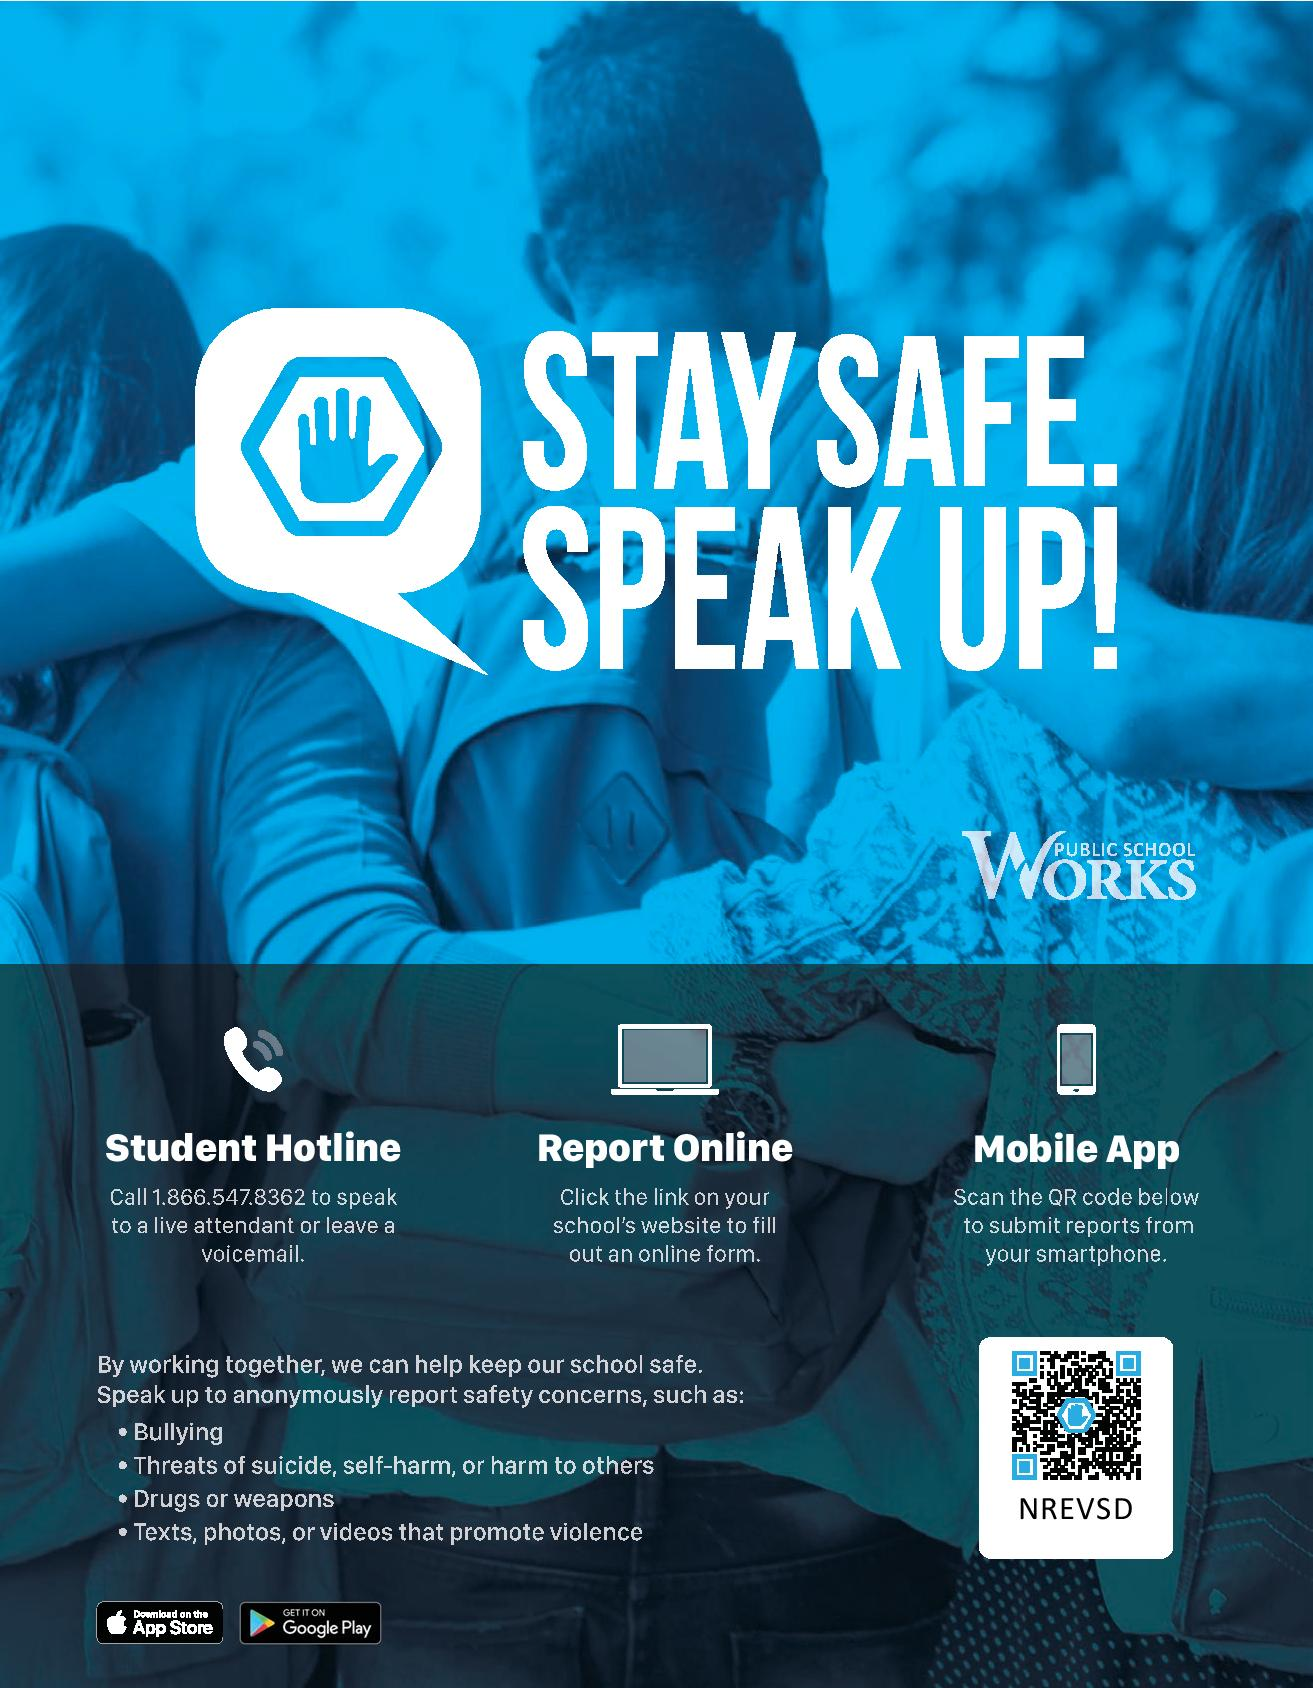 Poster for Stay Safe. Speak Up!